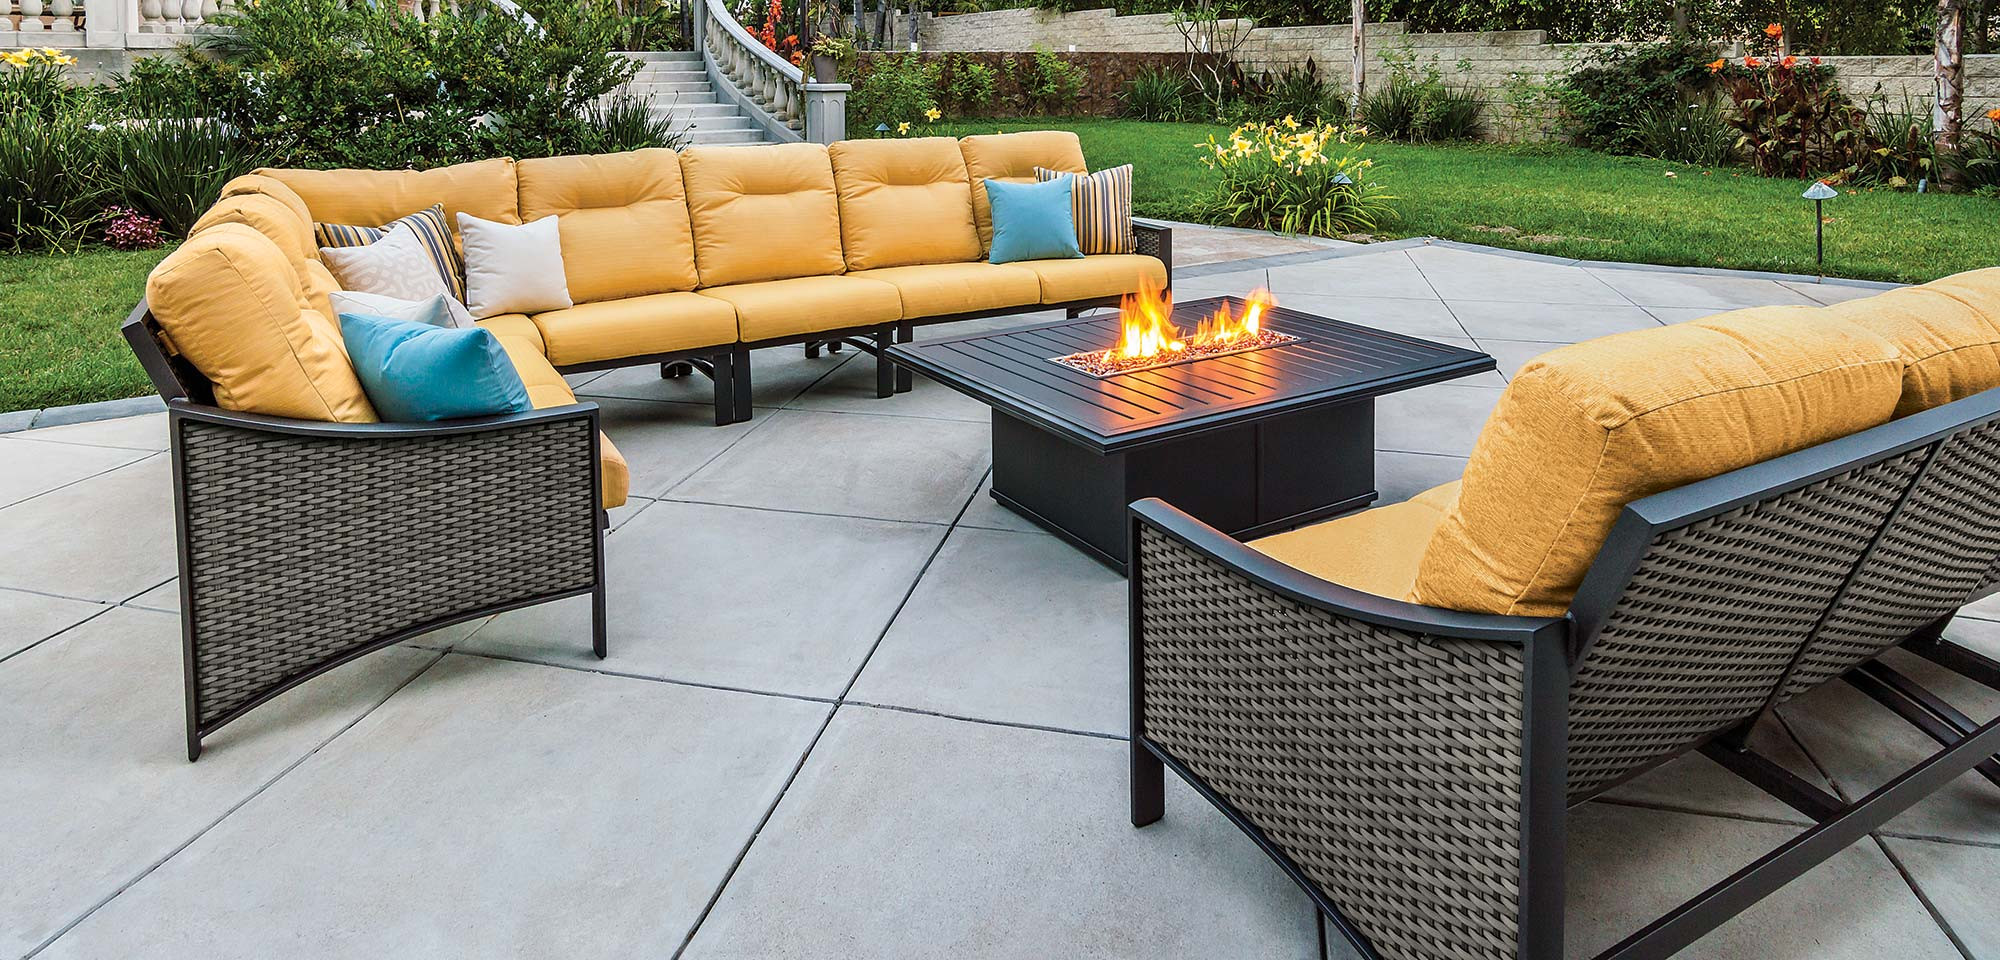 Best ideas about Patio Furniture Sets . Save or Pin Patio Furniture Now.